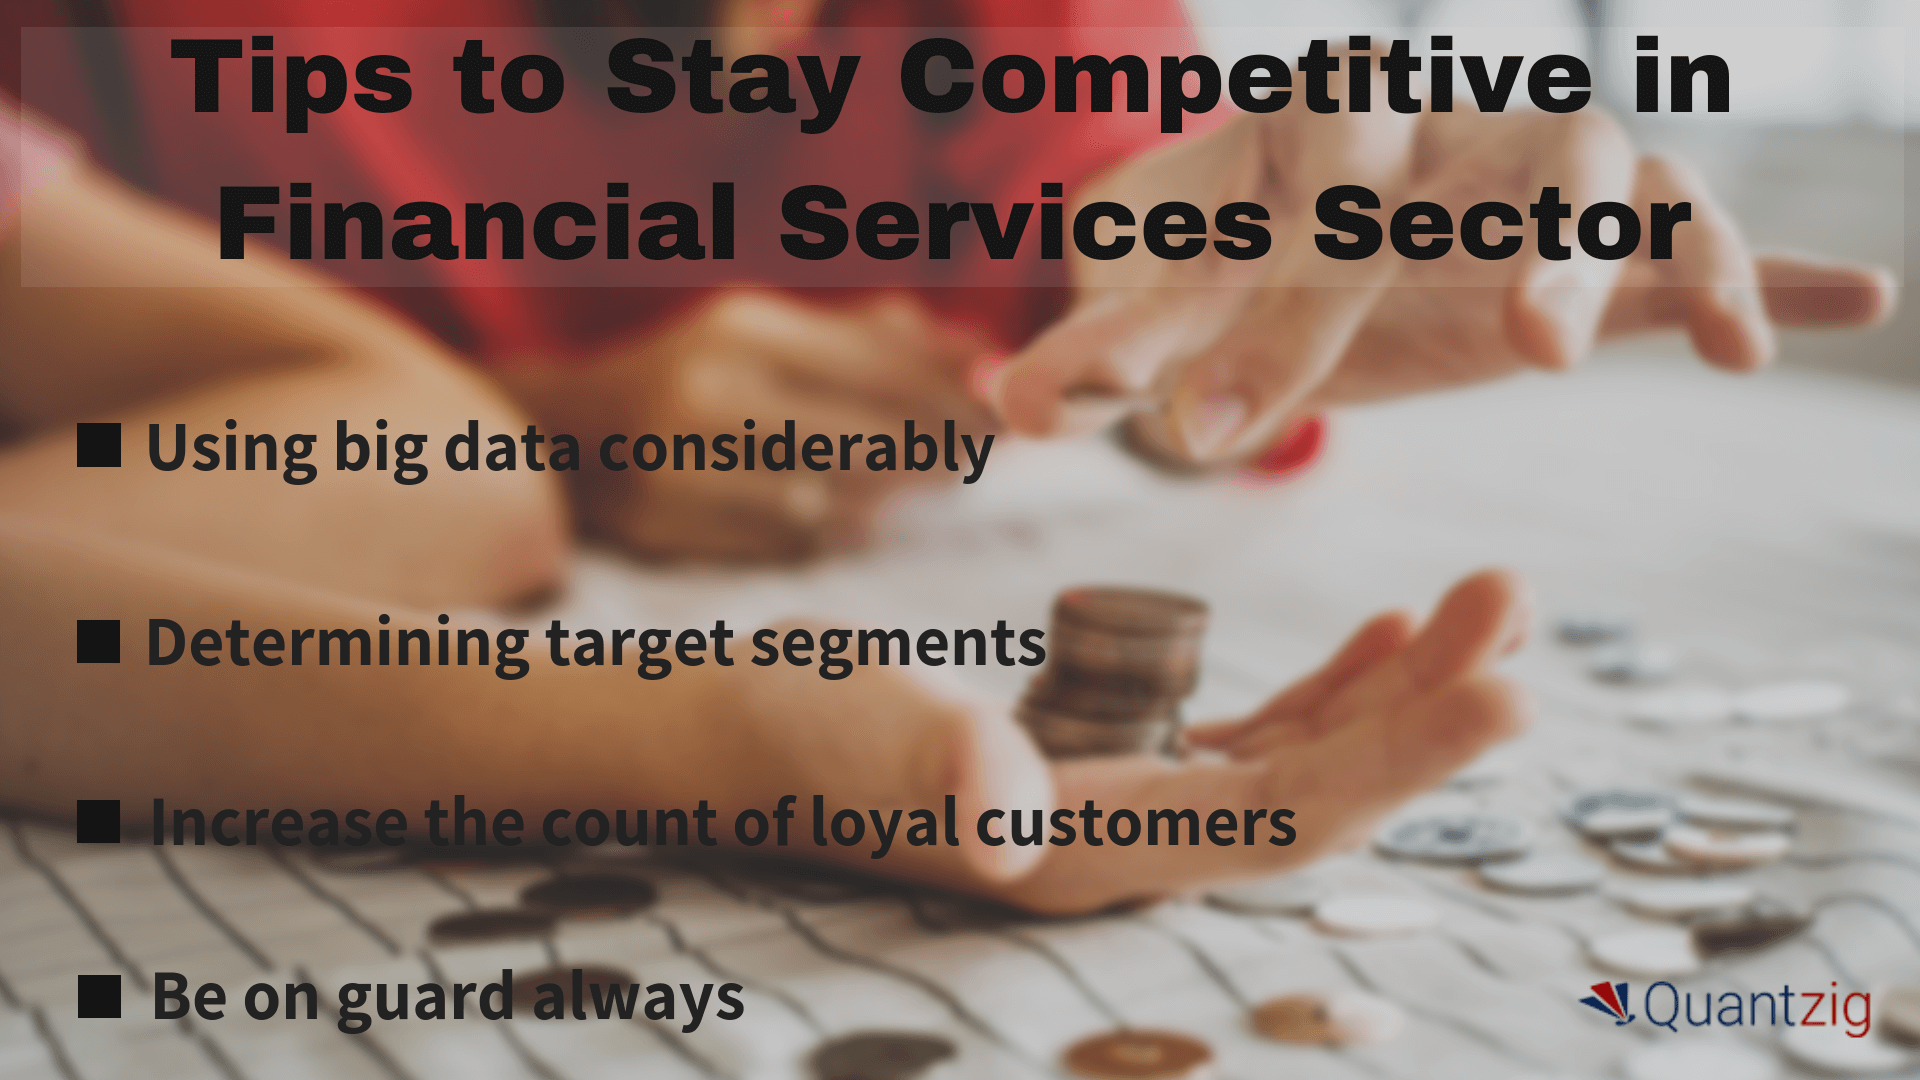 Tips to Stay Competitive in Financial Services Sector (1)